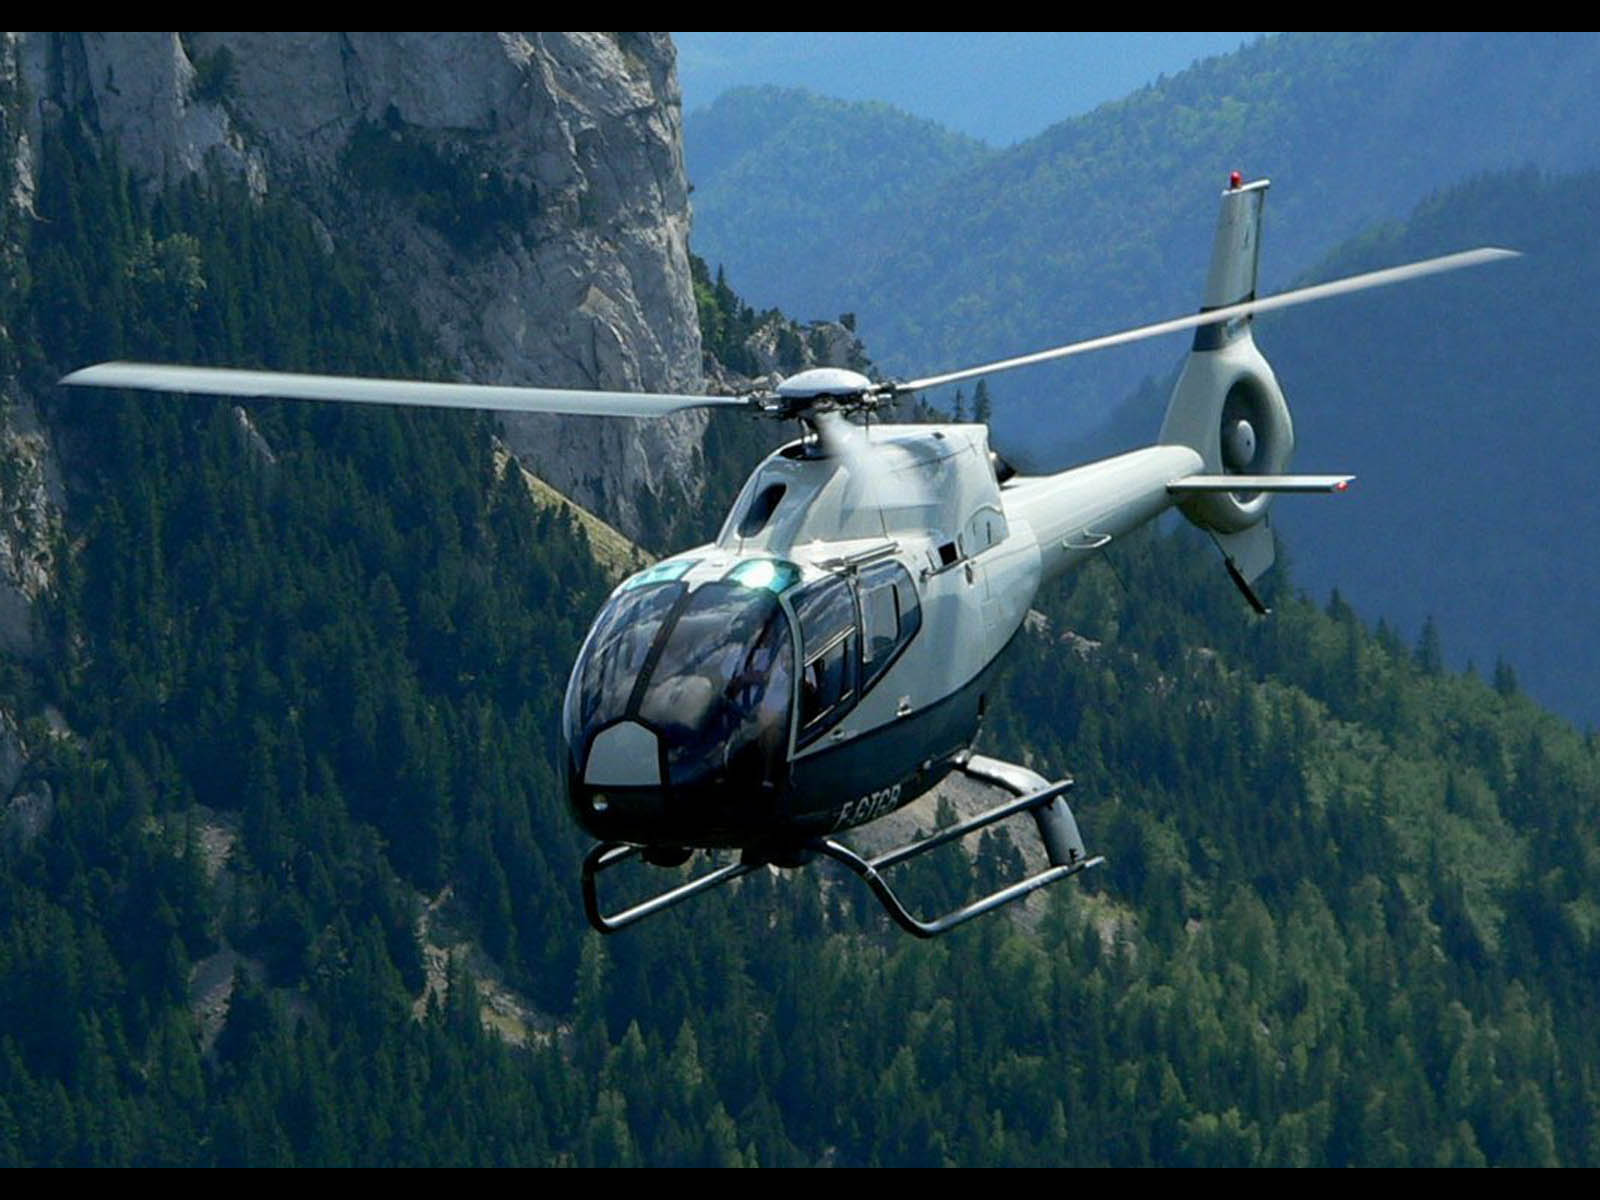 wallpapers Eurocopter EC 120 1600x1200